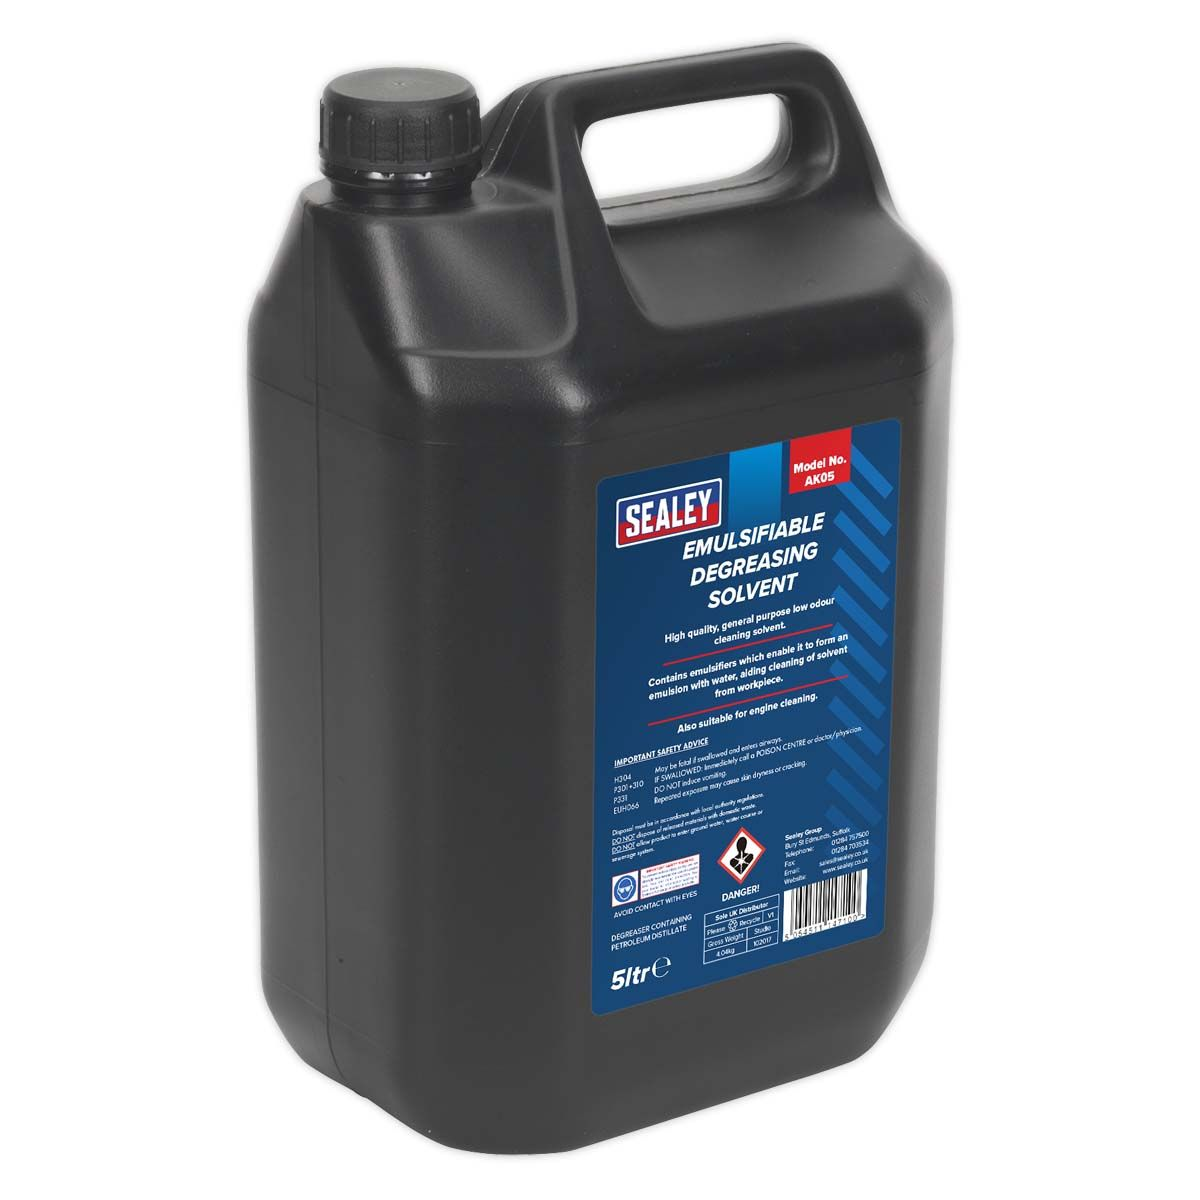 Sealey Degreasing Solvent Emulsifiable 5L